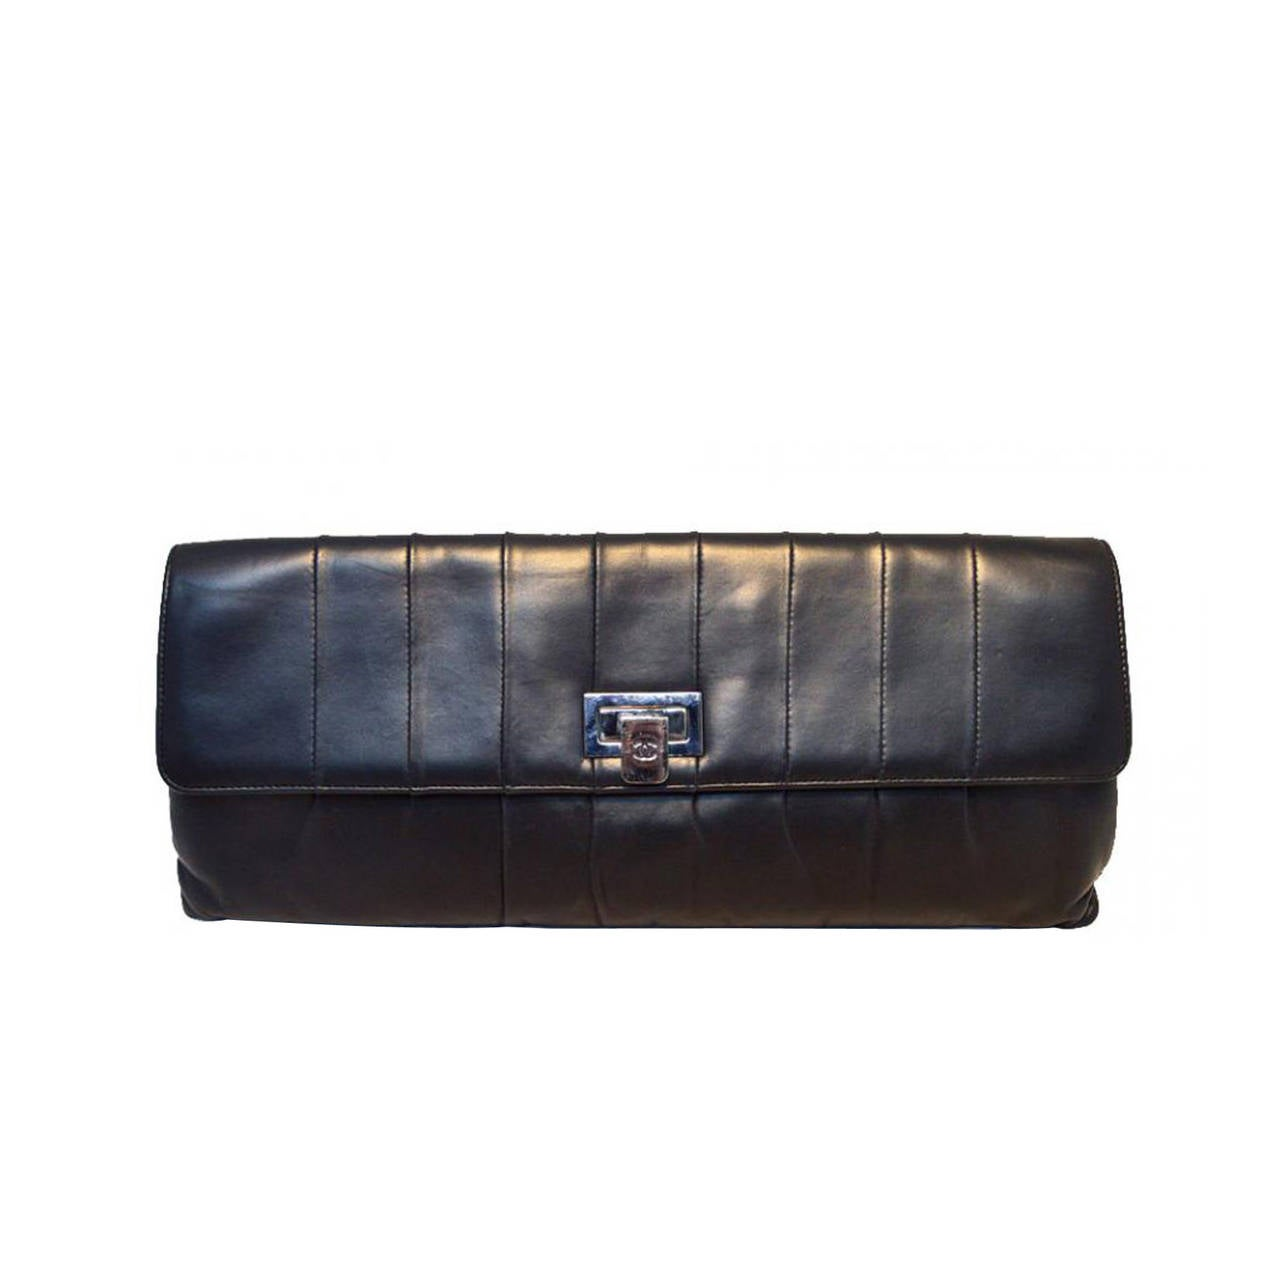 Chanel Black Pleated Lambskin Leather Clutch